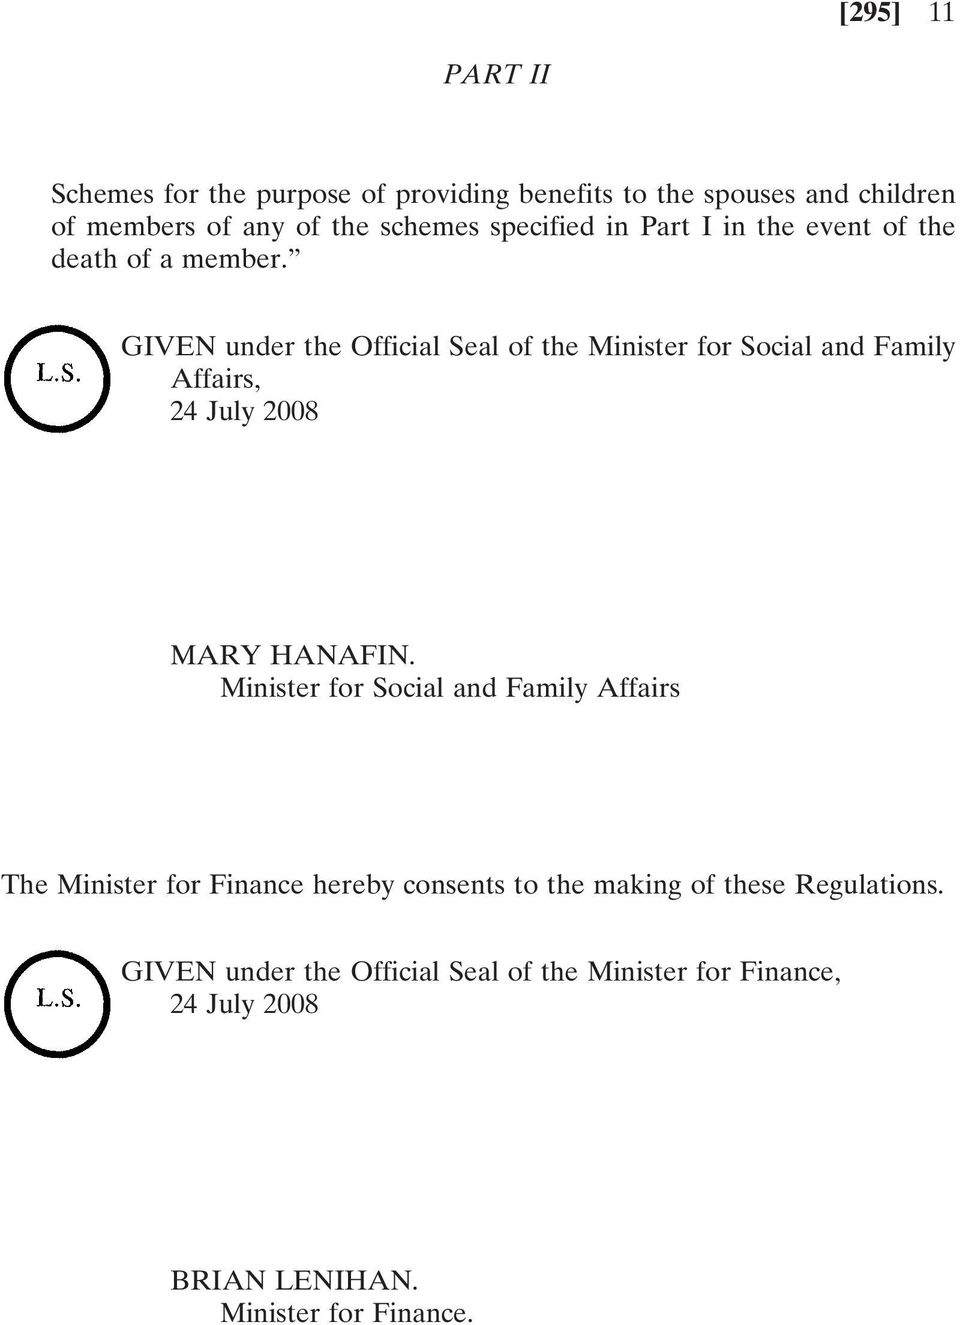 GIVEN under the Official Seal of the Minister for Social and Family Affairs, 24 July 2008 MARY HANAFIN.